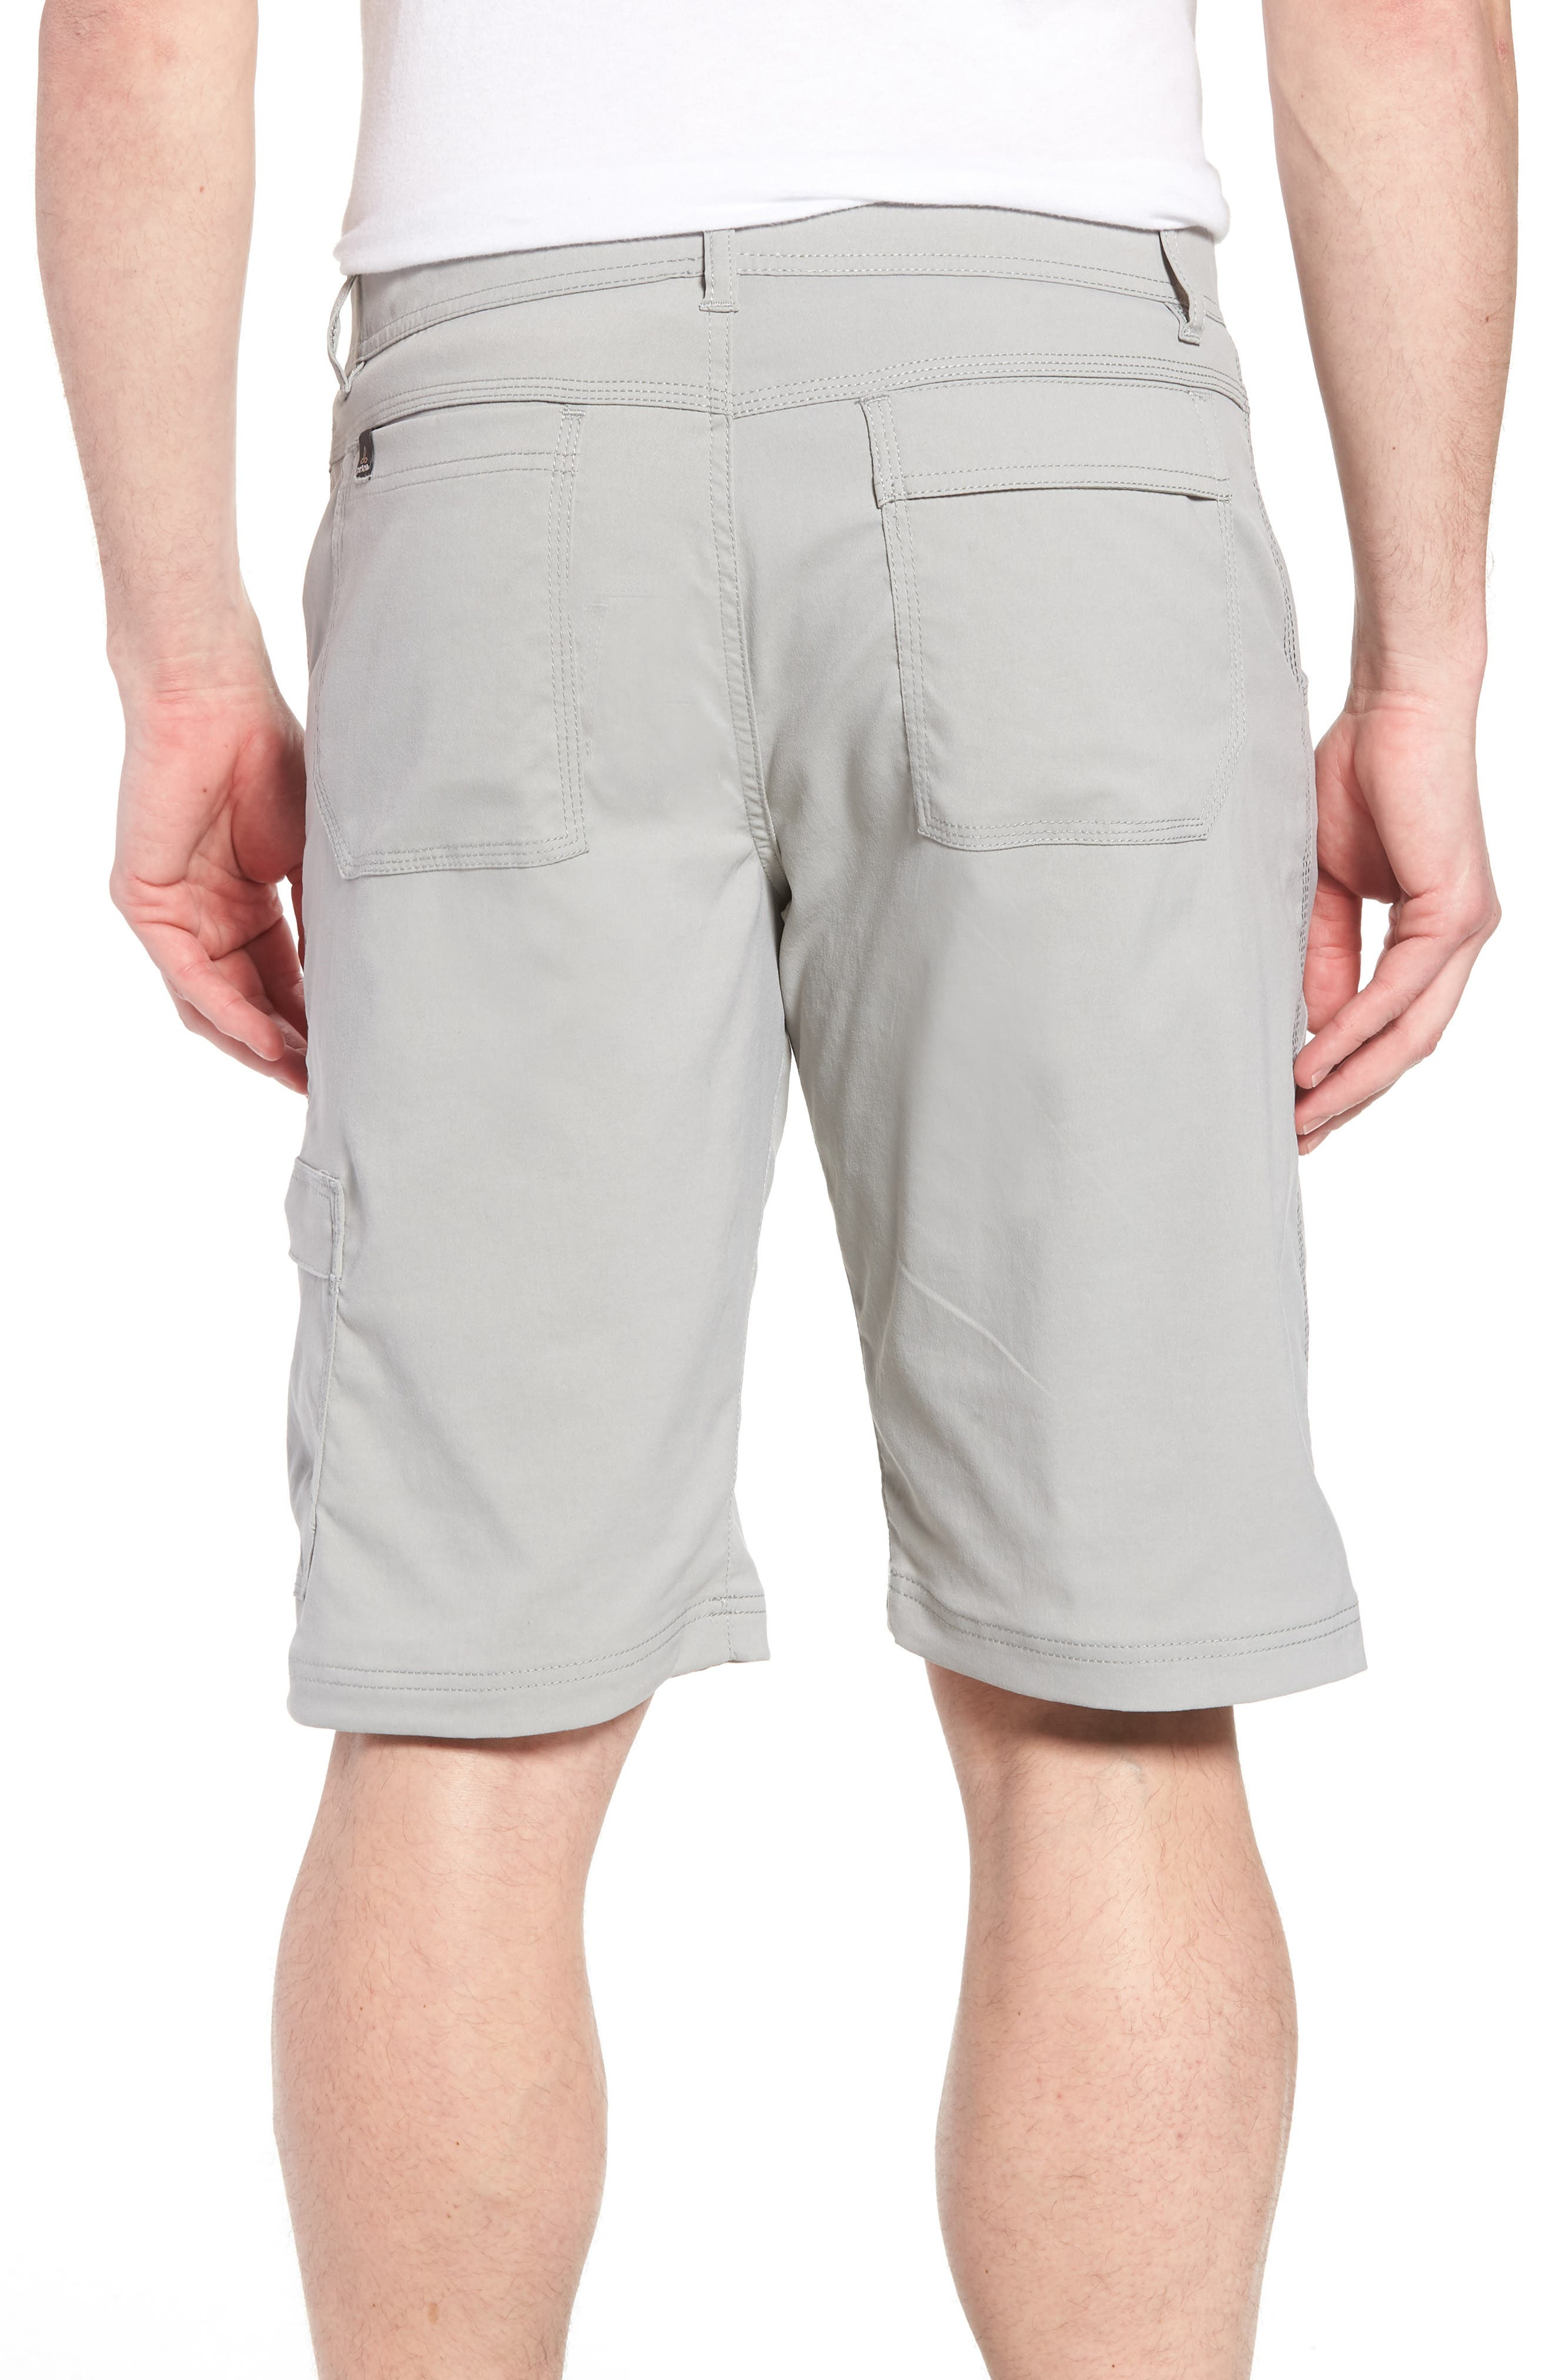 Zion Stretch Shorts,                             Alternate thumbnail 2, color,                             020